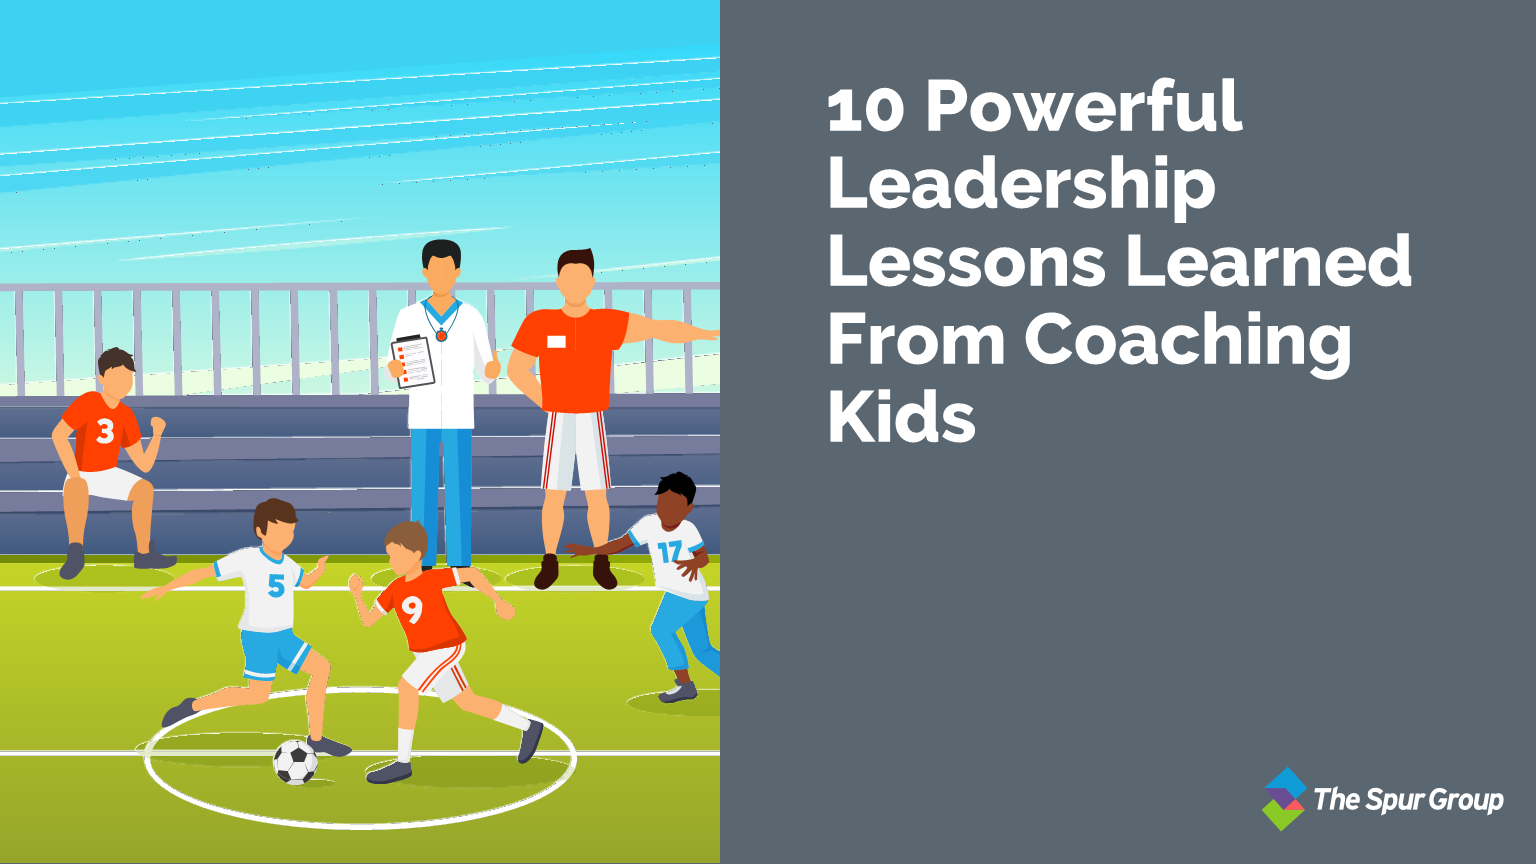 10 Powerful Leadership Lessons Learned From Coaching Kids